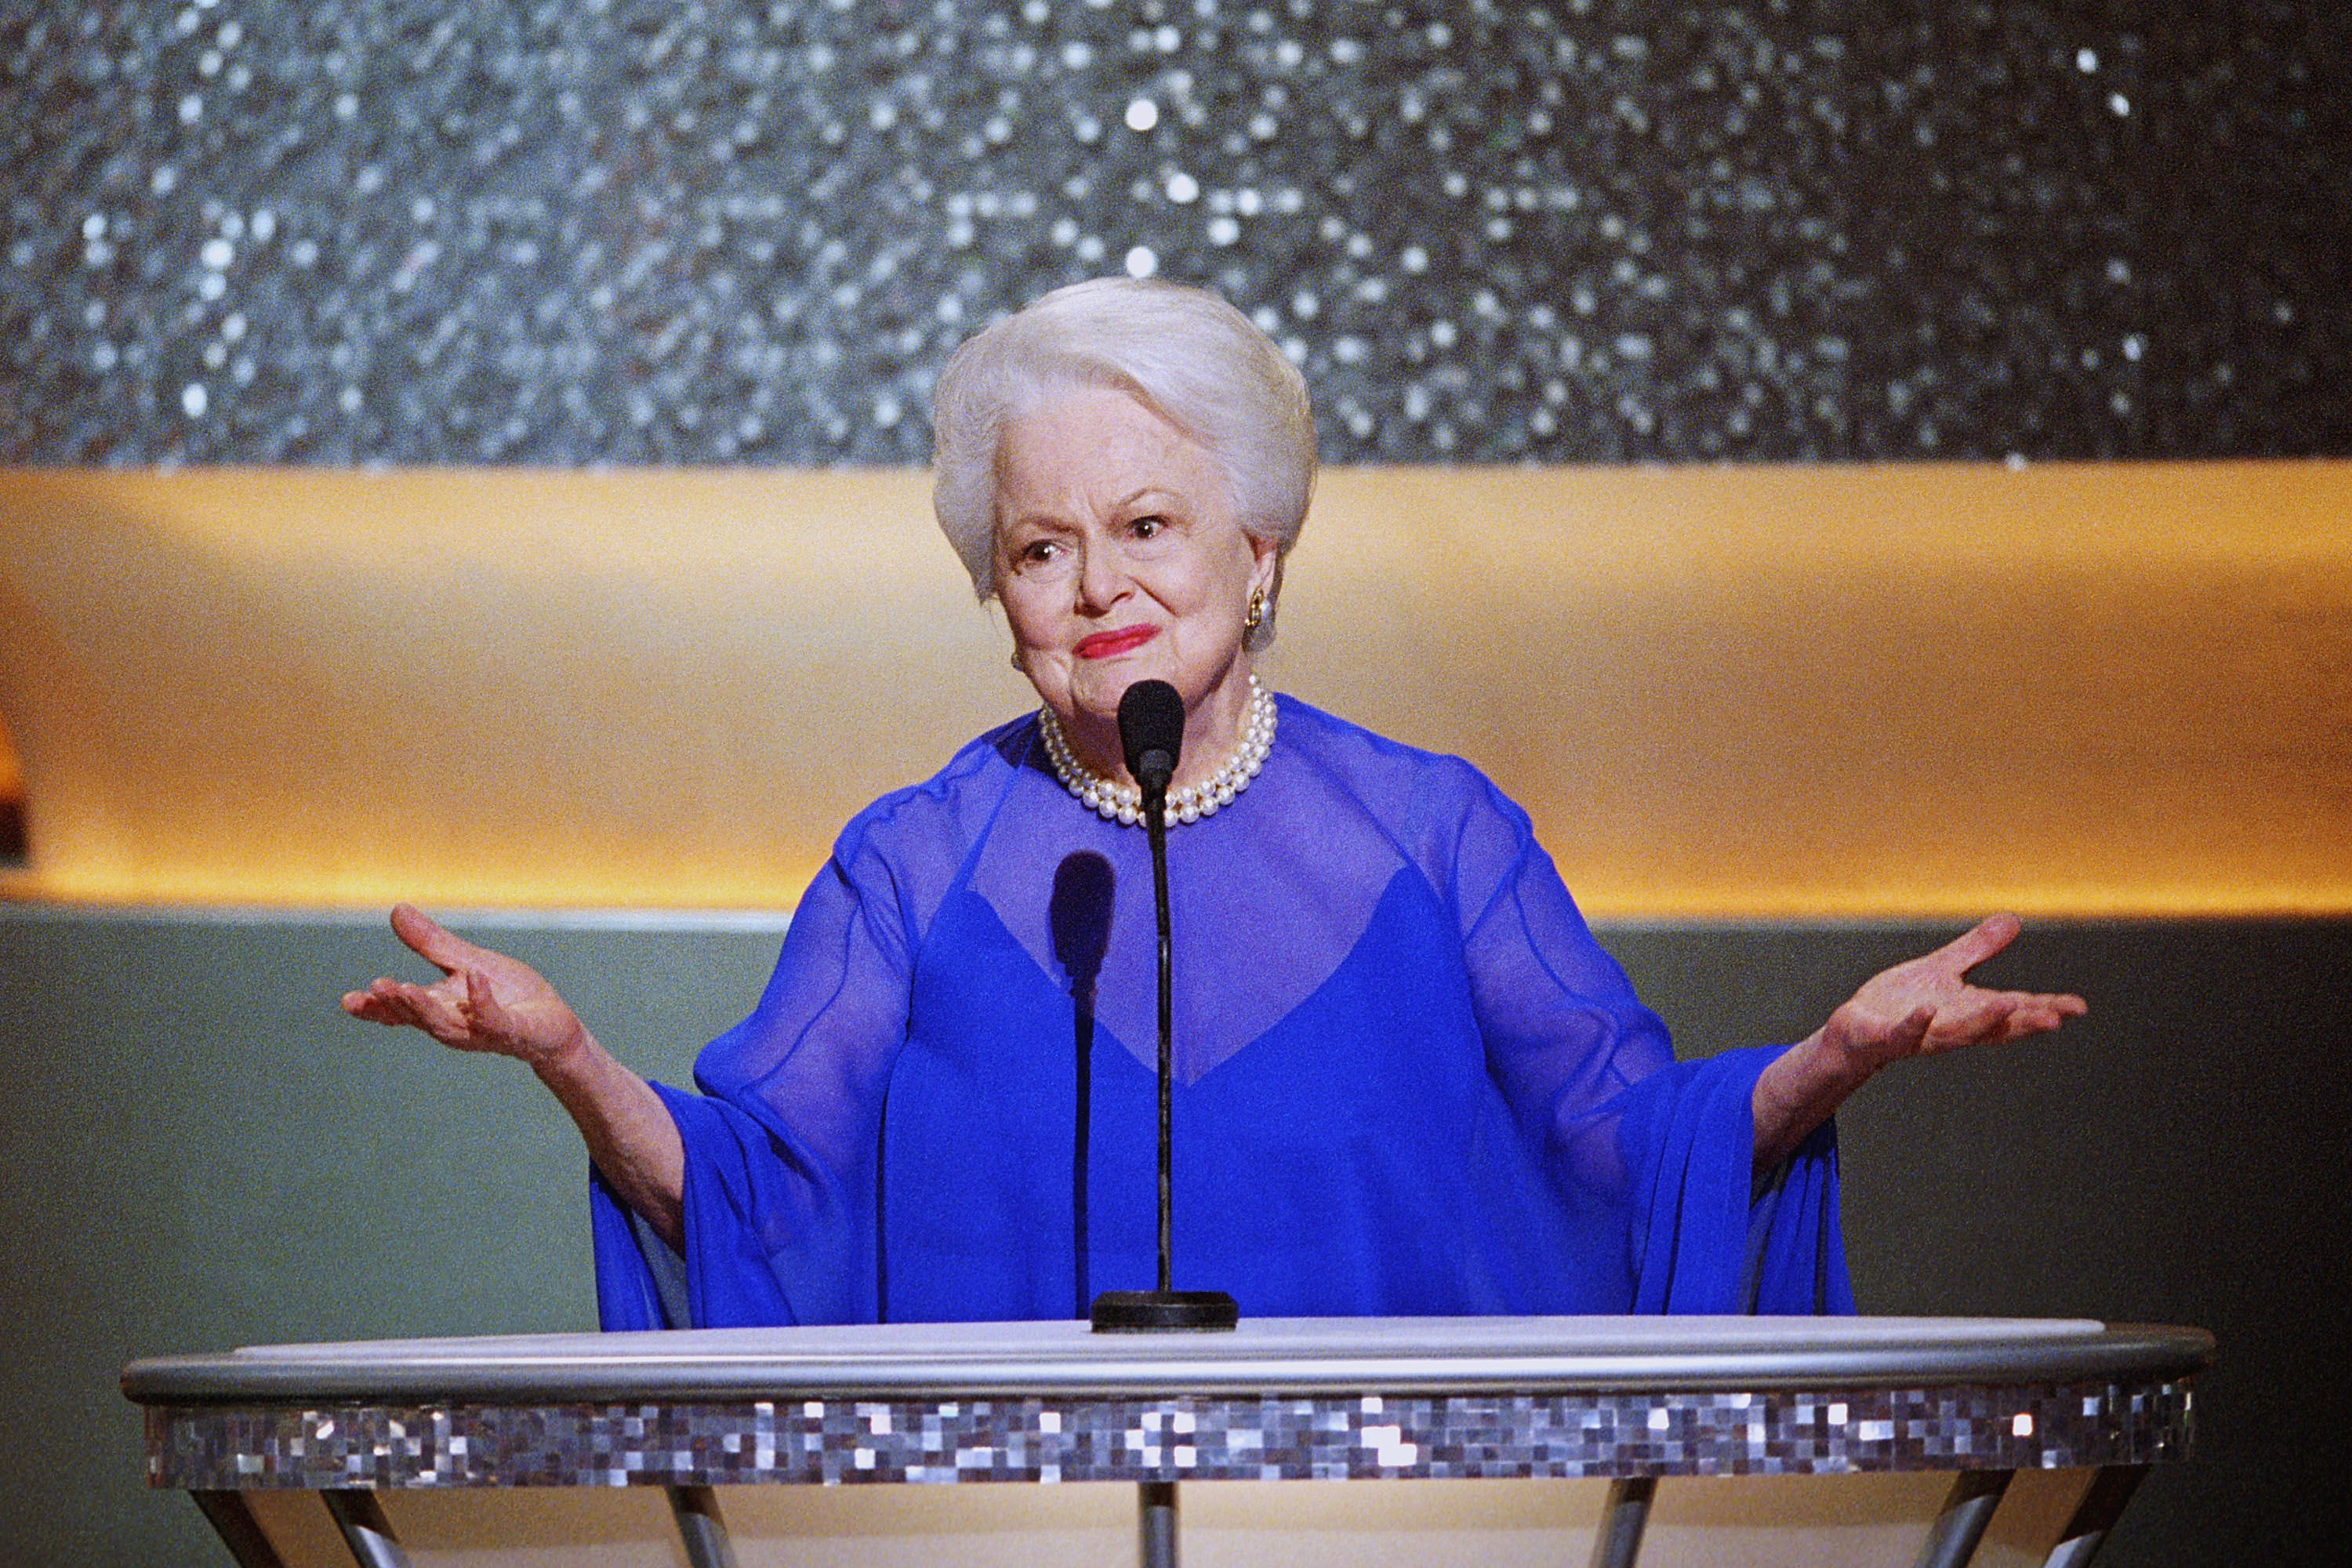 Olivia de Havilland, Last Surviving Star of Gone with the Wind, Celebrating 101st Birthday